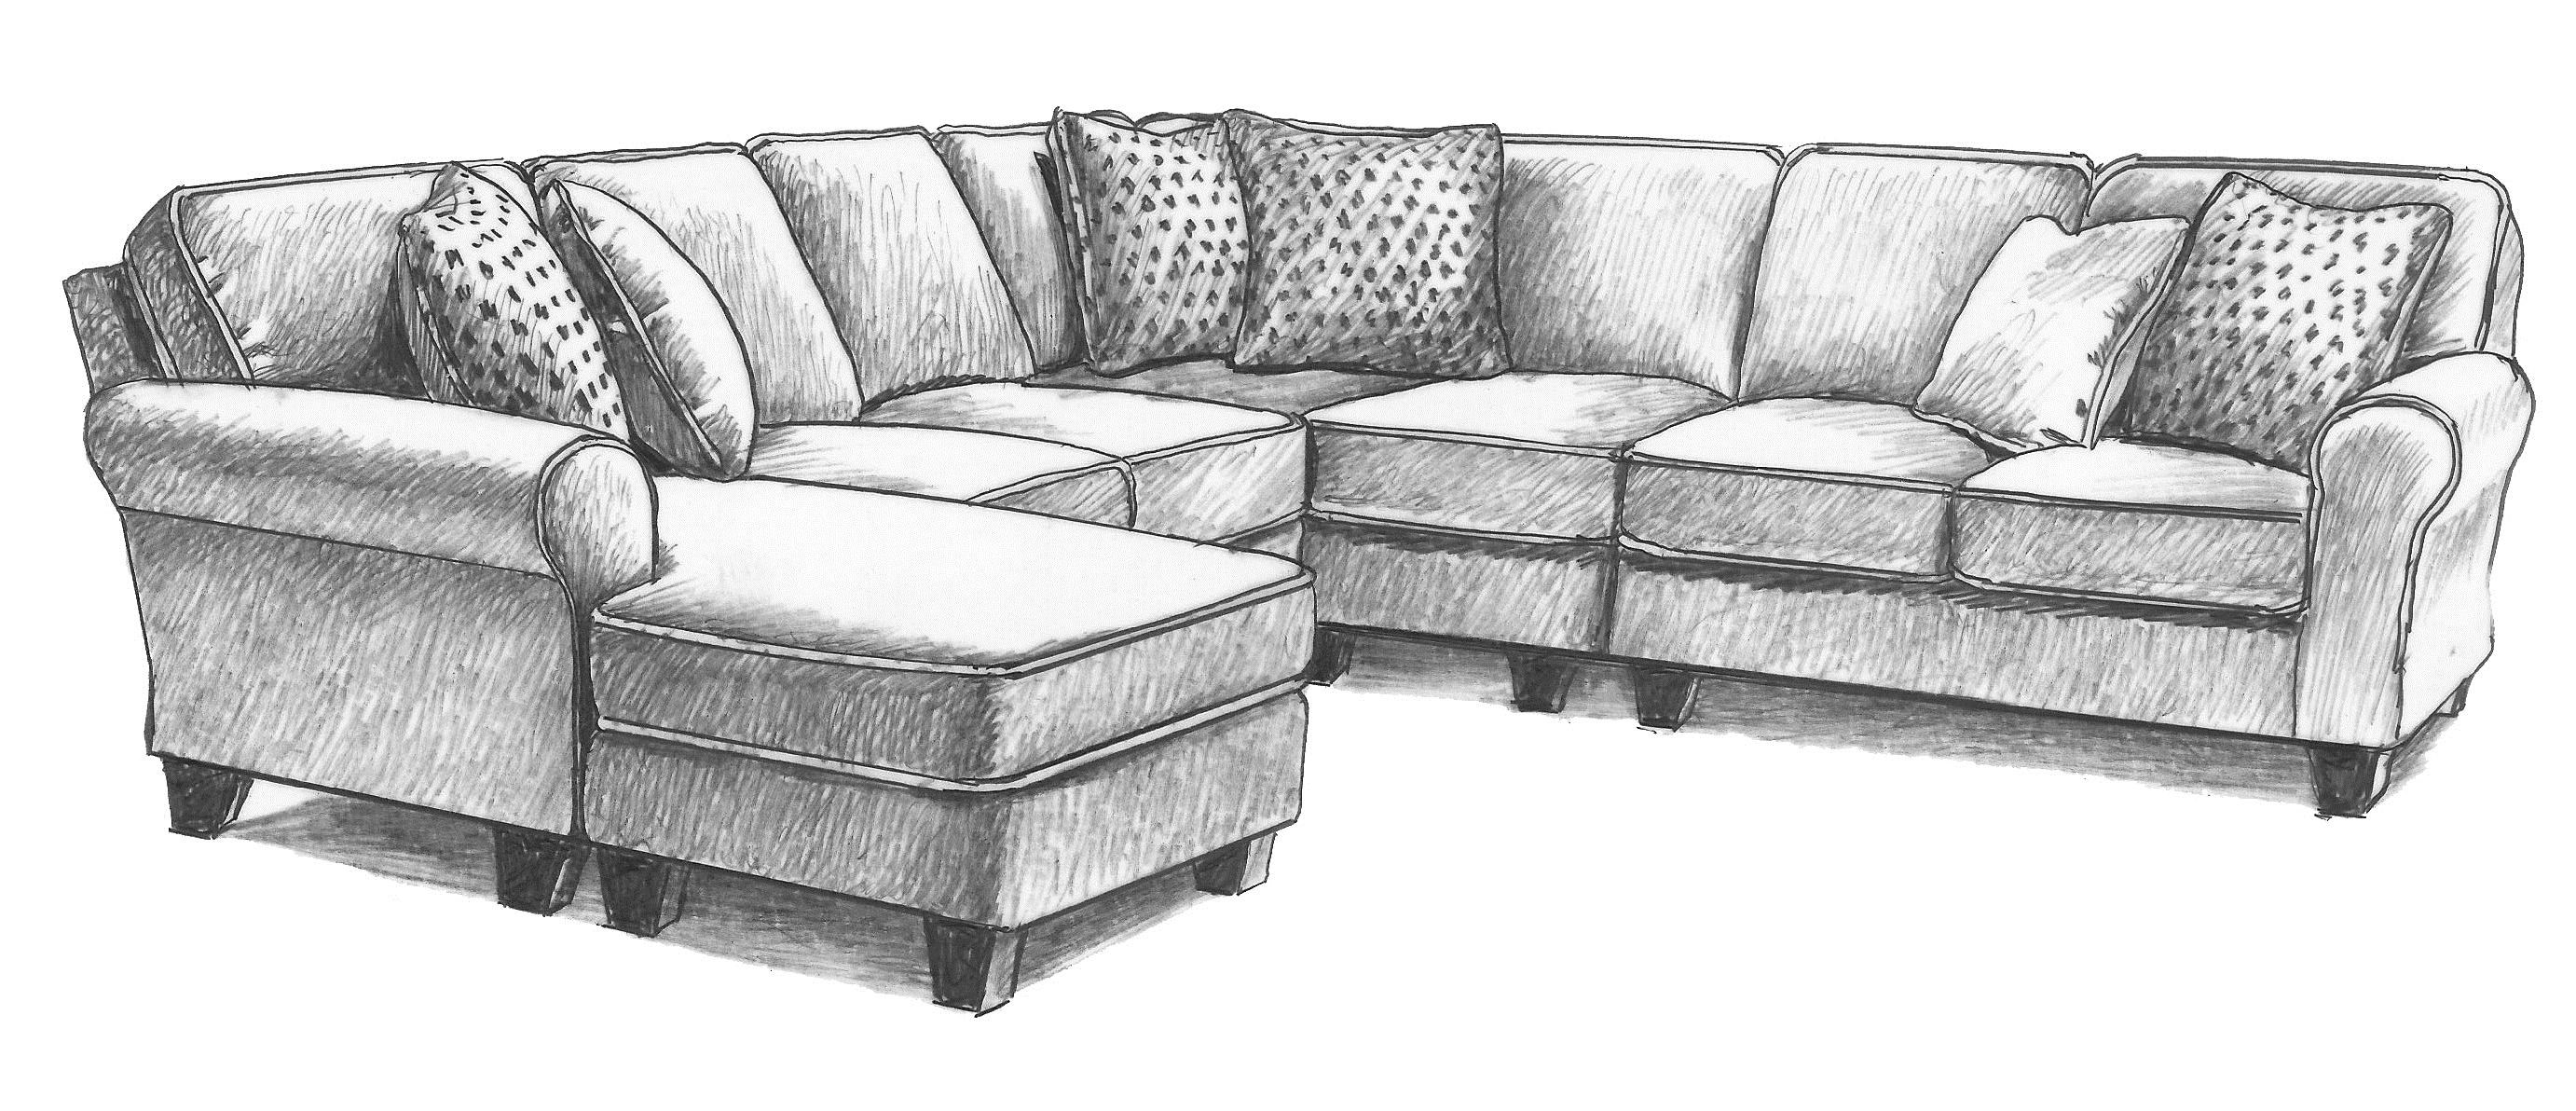 Five Piece Customizable Sectional Sofa with Sock Rolled Arms and Wood Feet